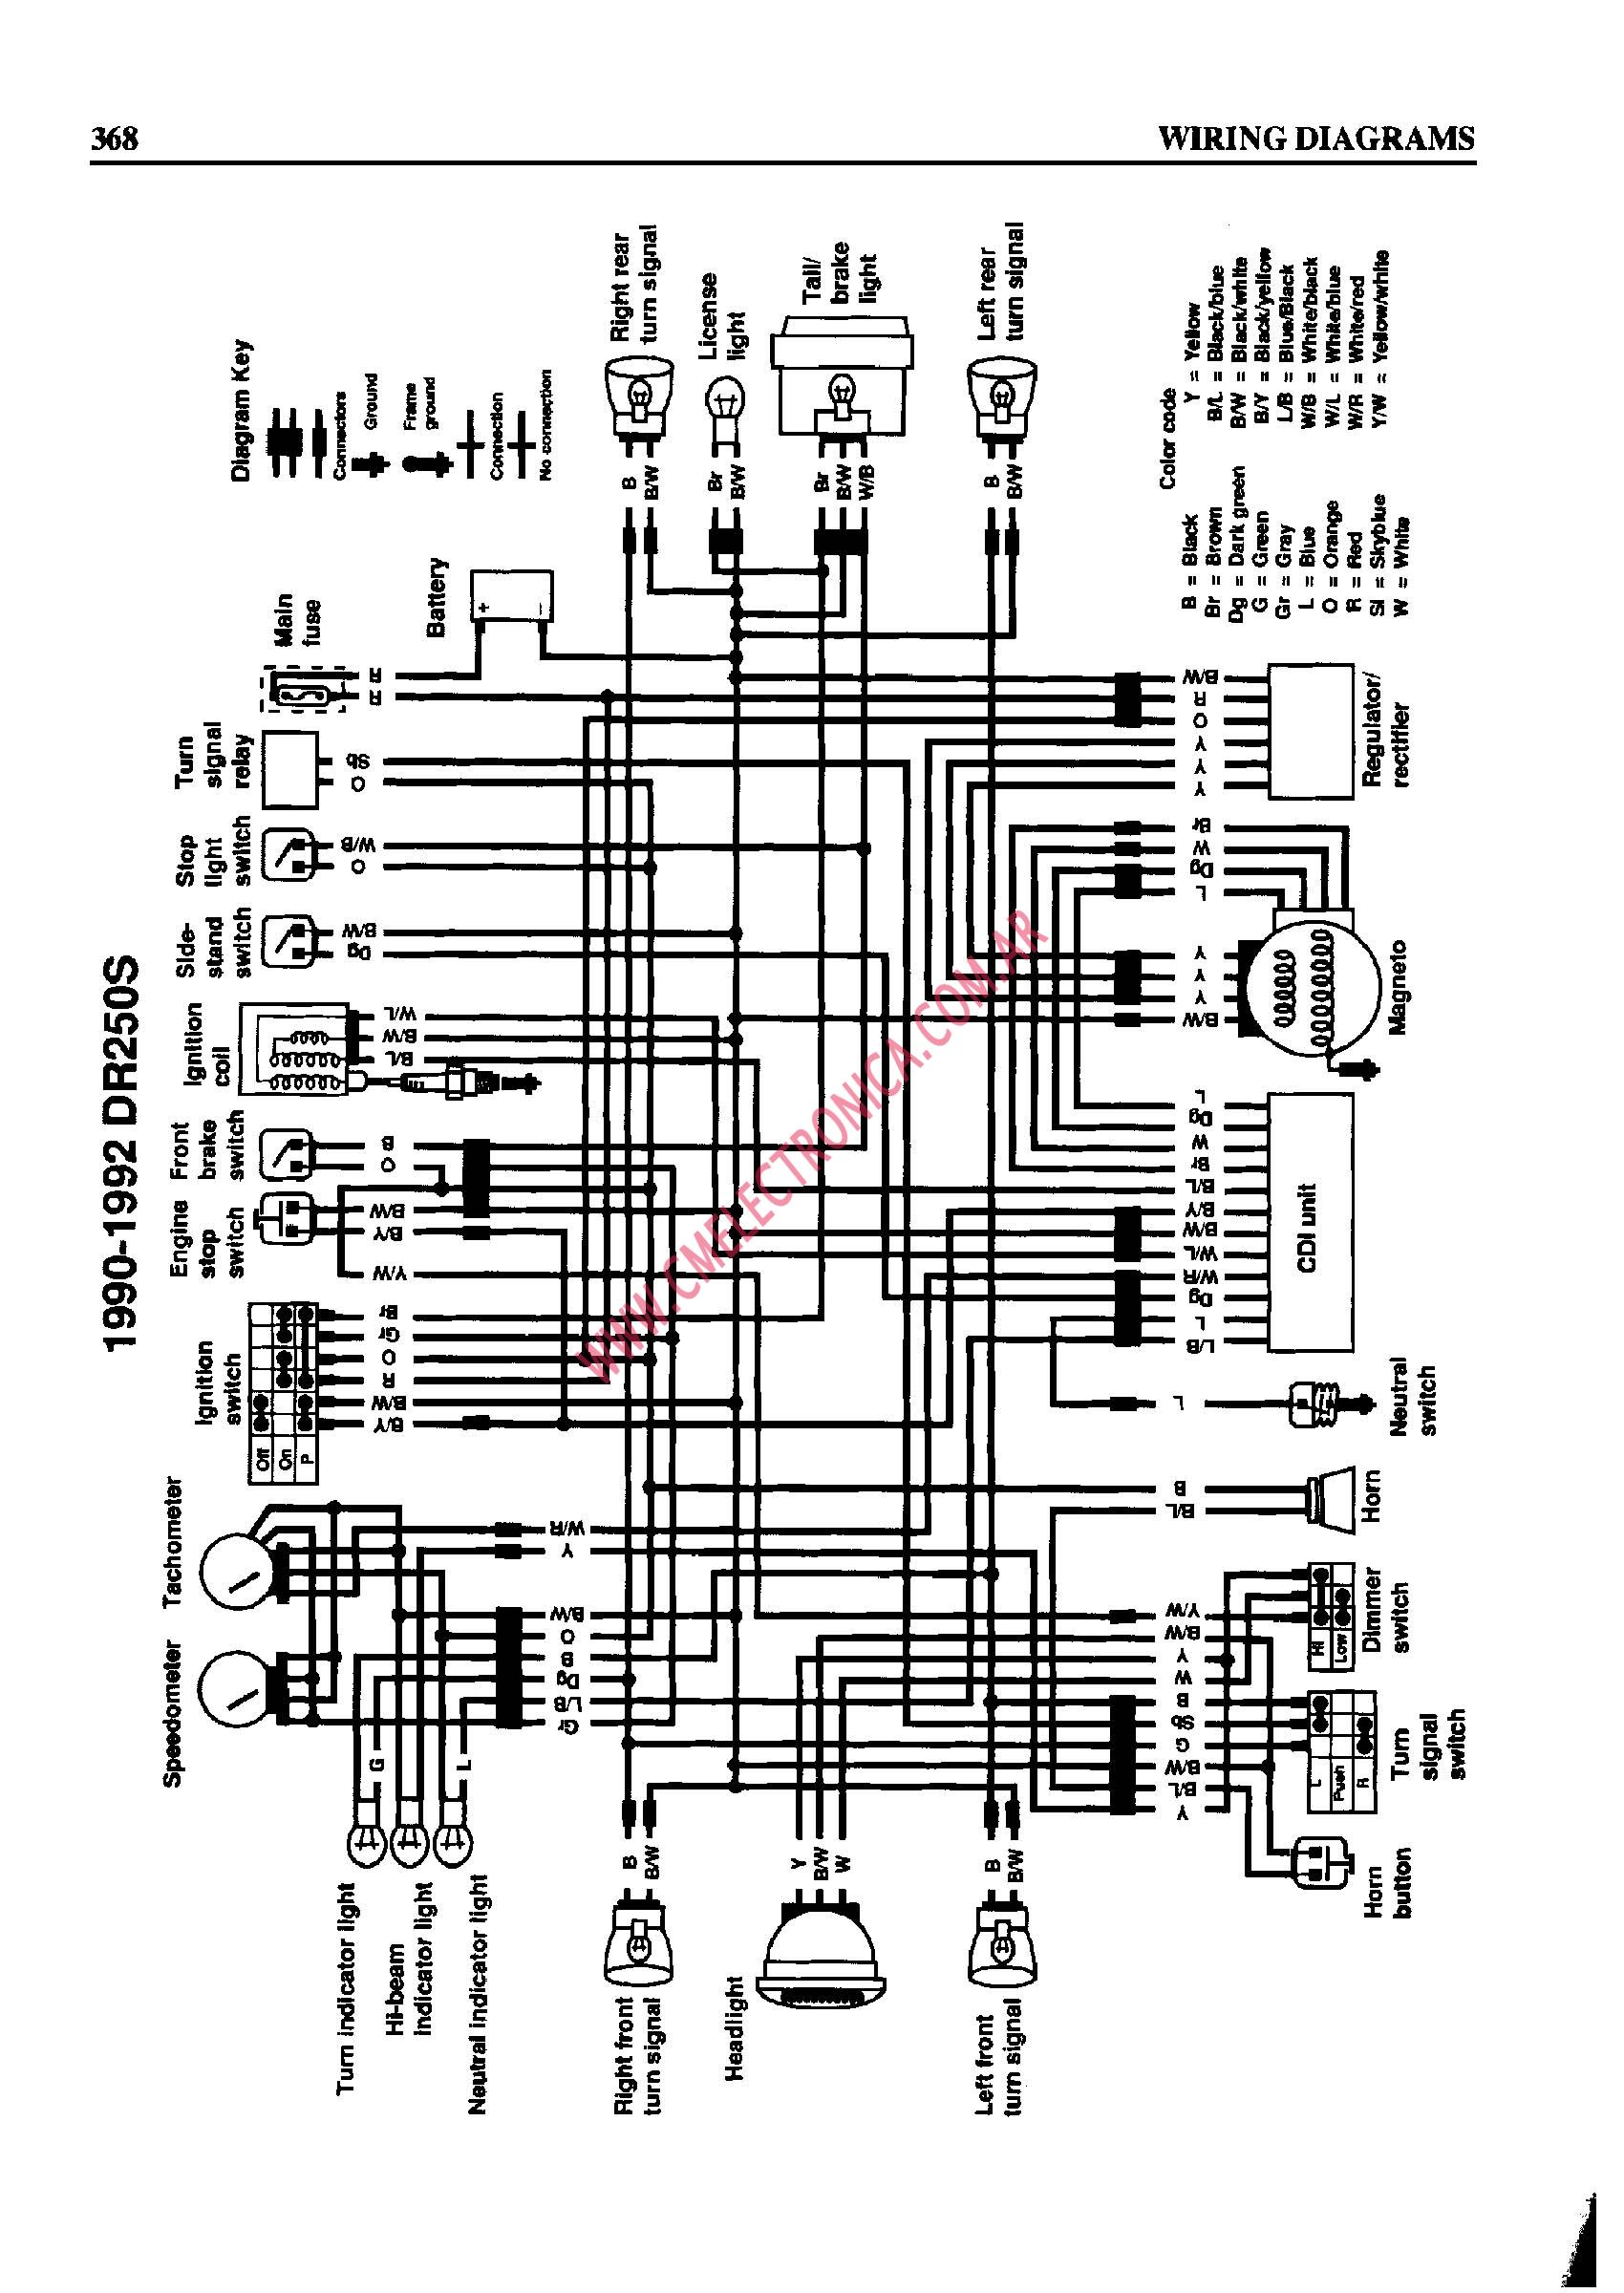 Suzuki Dr 250 Wiring Diagram Control 82 Camaro Engine Bay Schematic Gn 125 28 Images